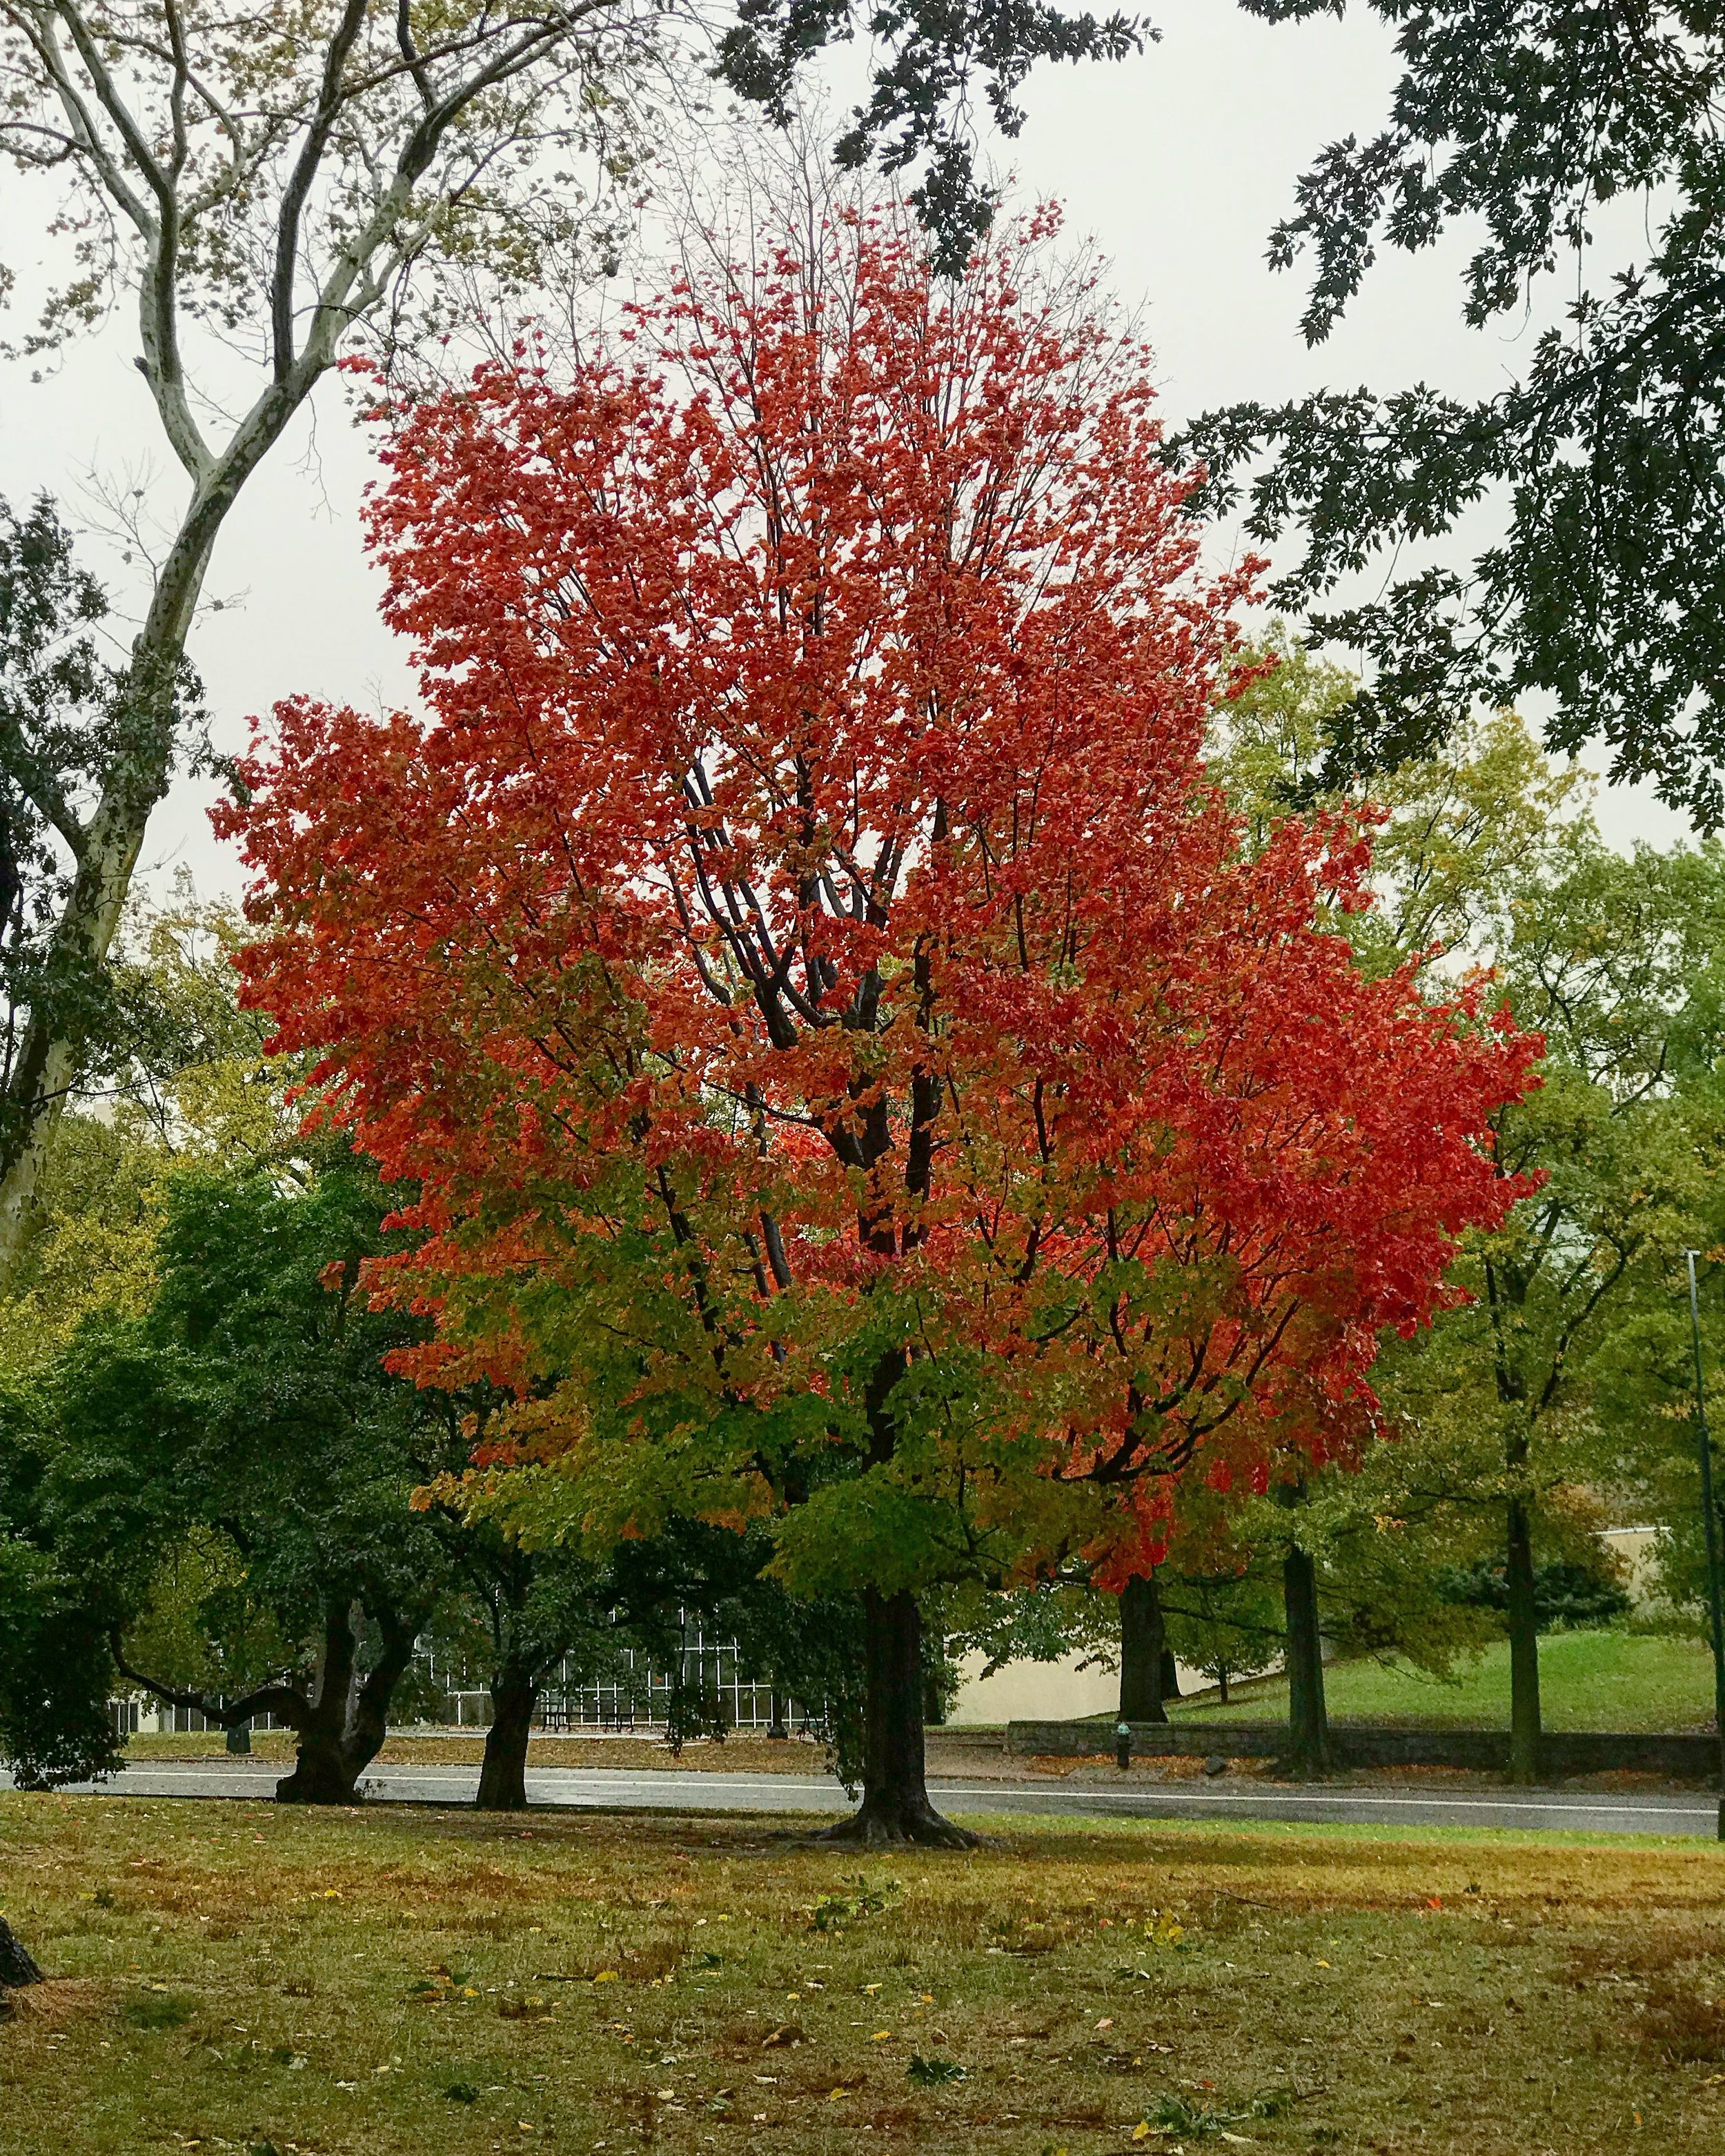 Central Park, Red Tree on the Great Lawn, 82n Street behind the Met - October 24th, 2017